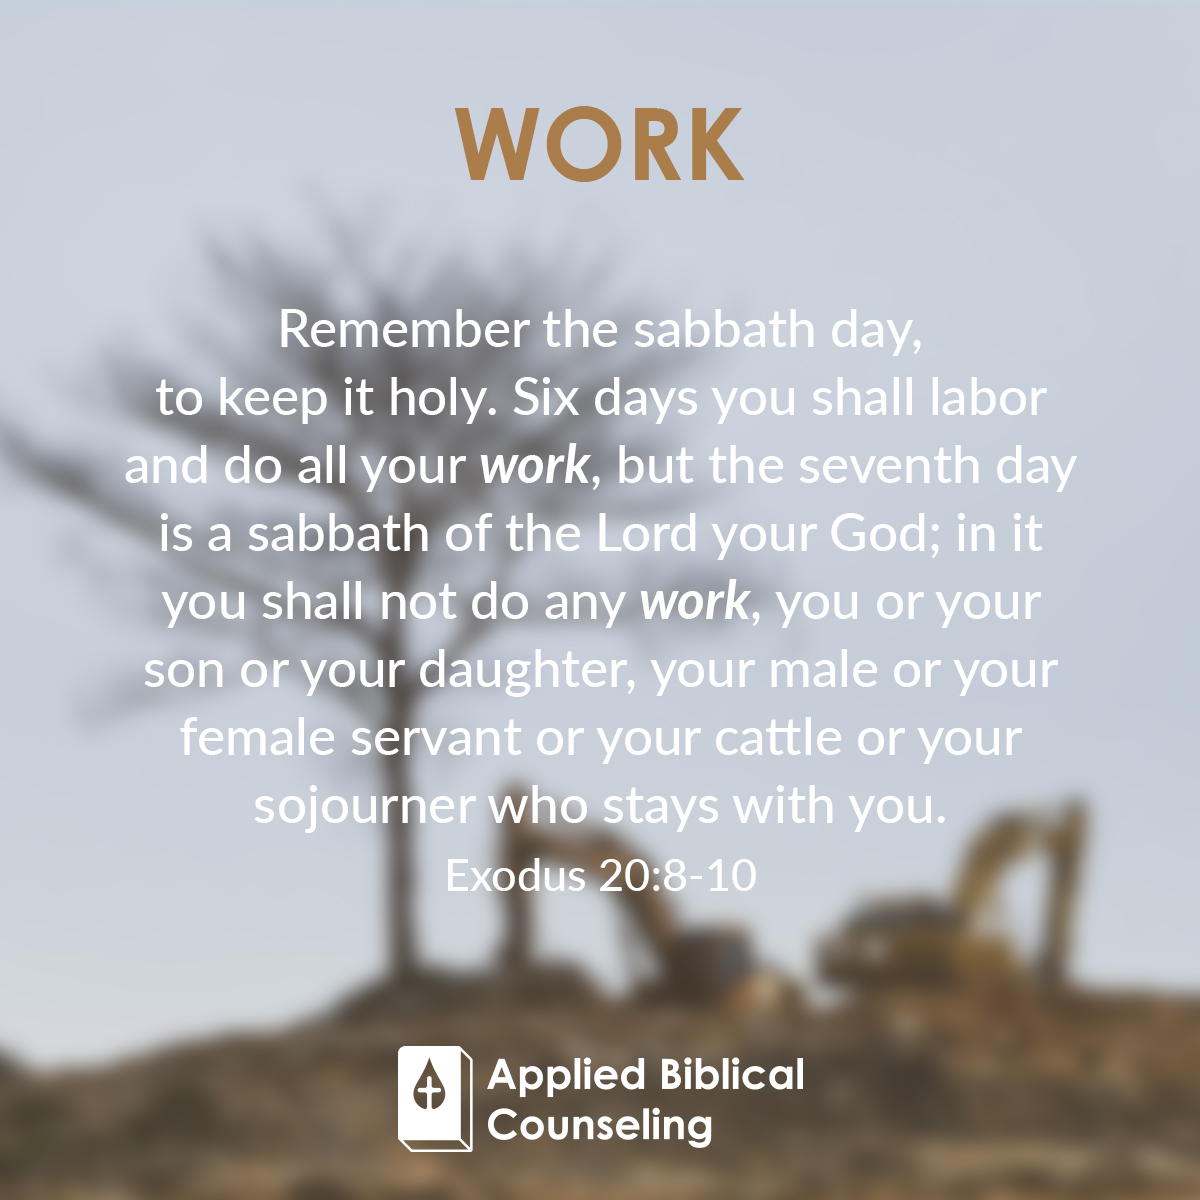 Applied Biblical Counseling Facebook w24 Work 4